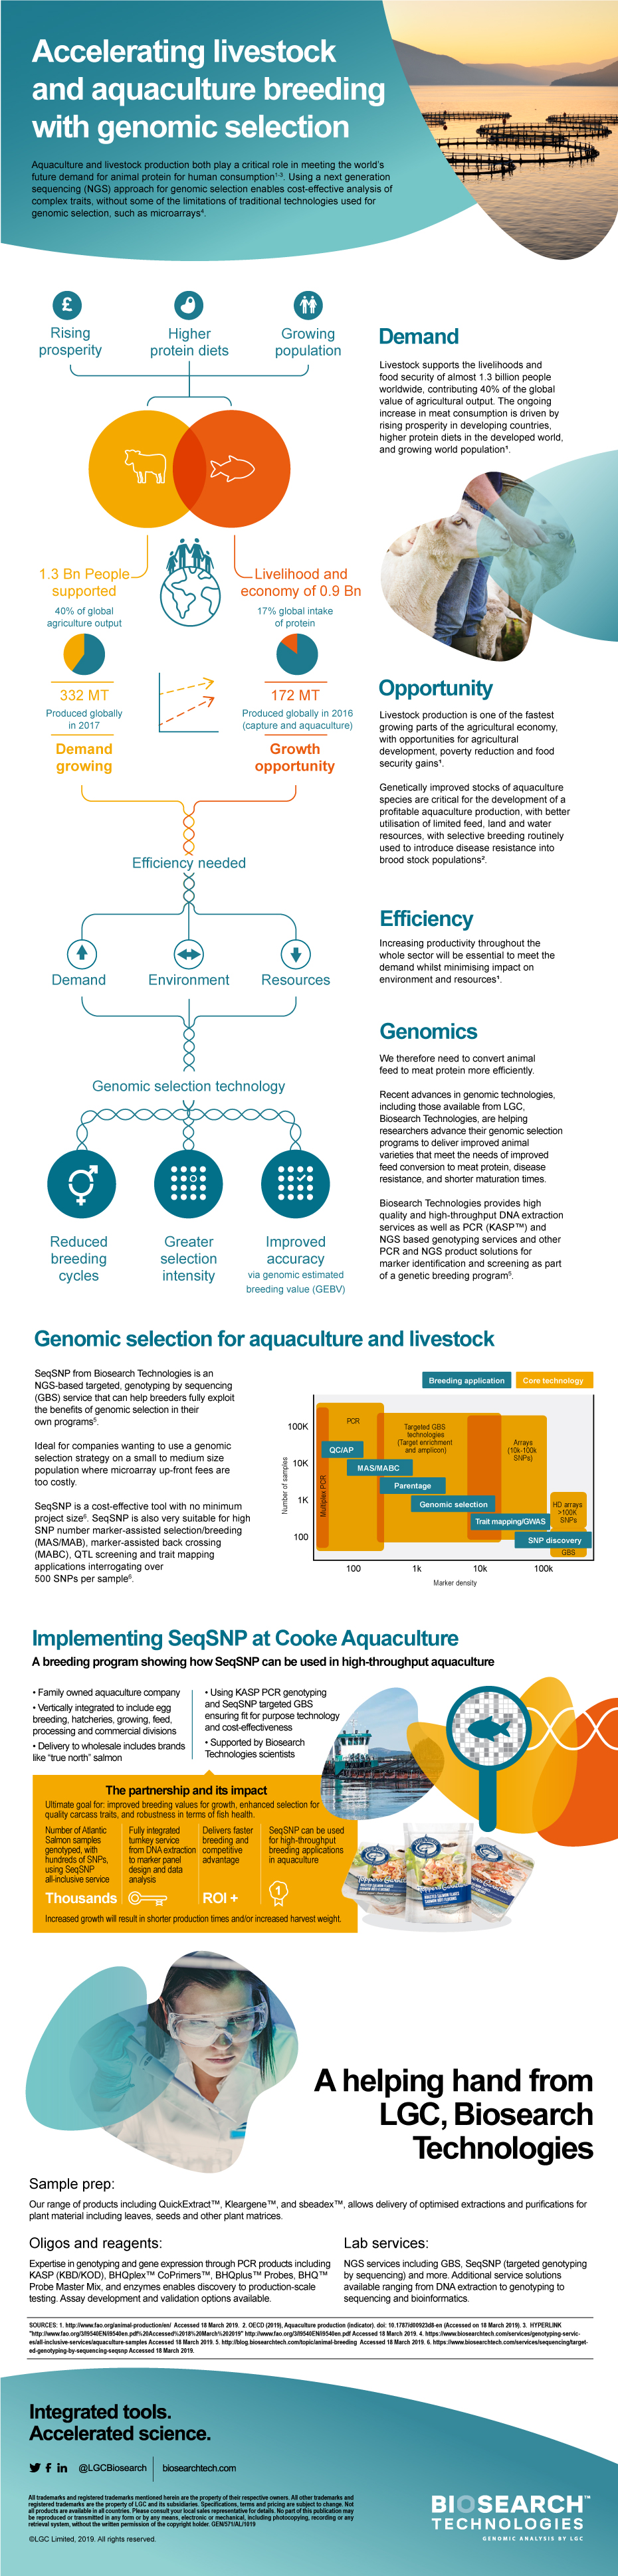 accelerating livestock and aquaculture breeding with genomic selection